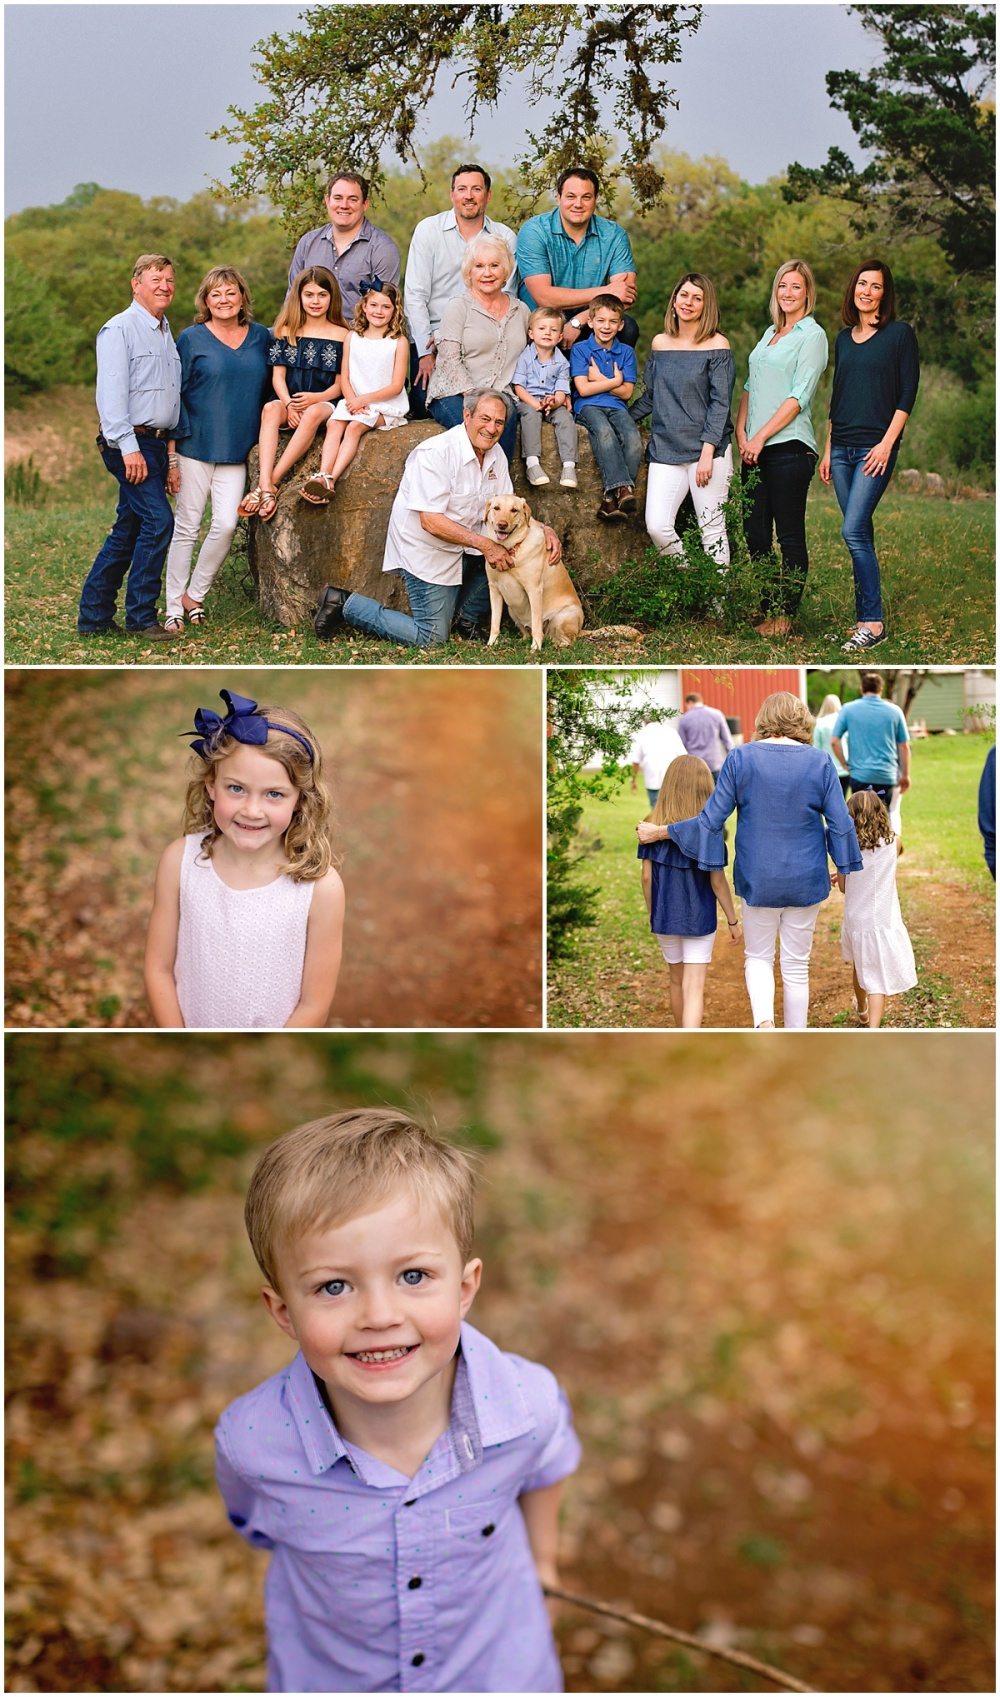 Family-Portraits-Classen-New-Braunels-Ranch-Carly-Barton-Photography_0041.jpg